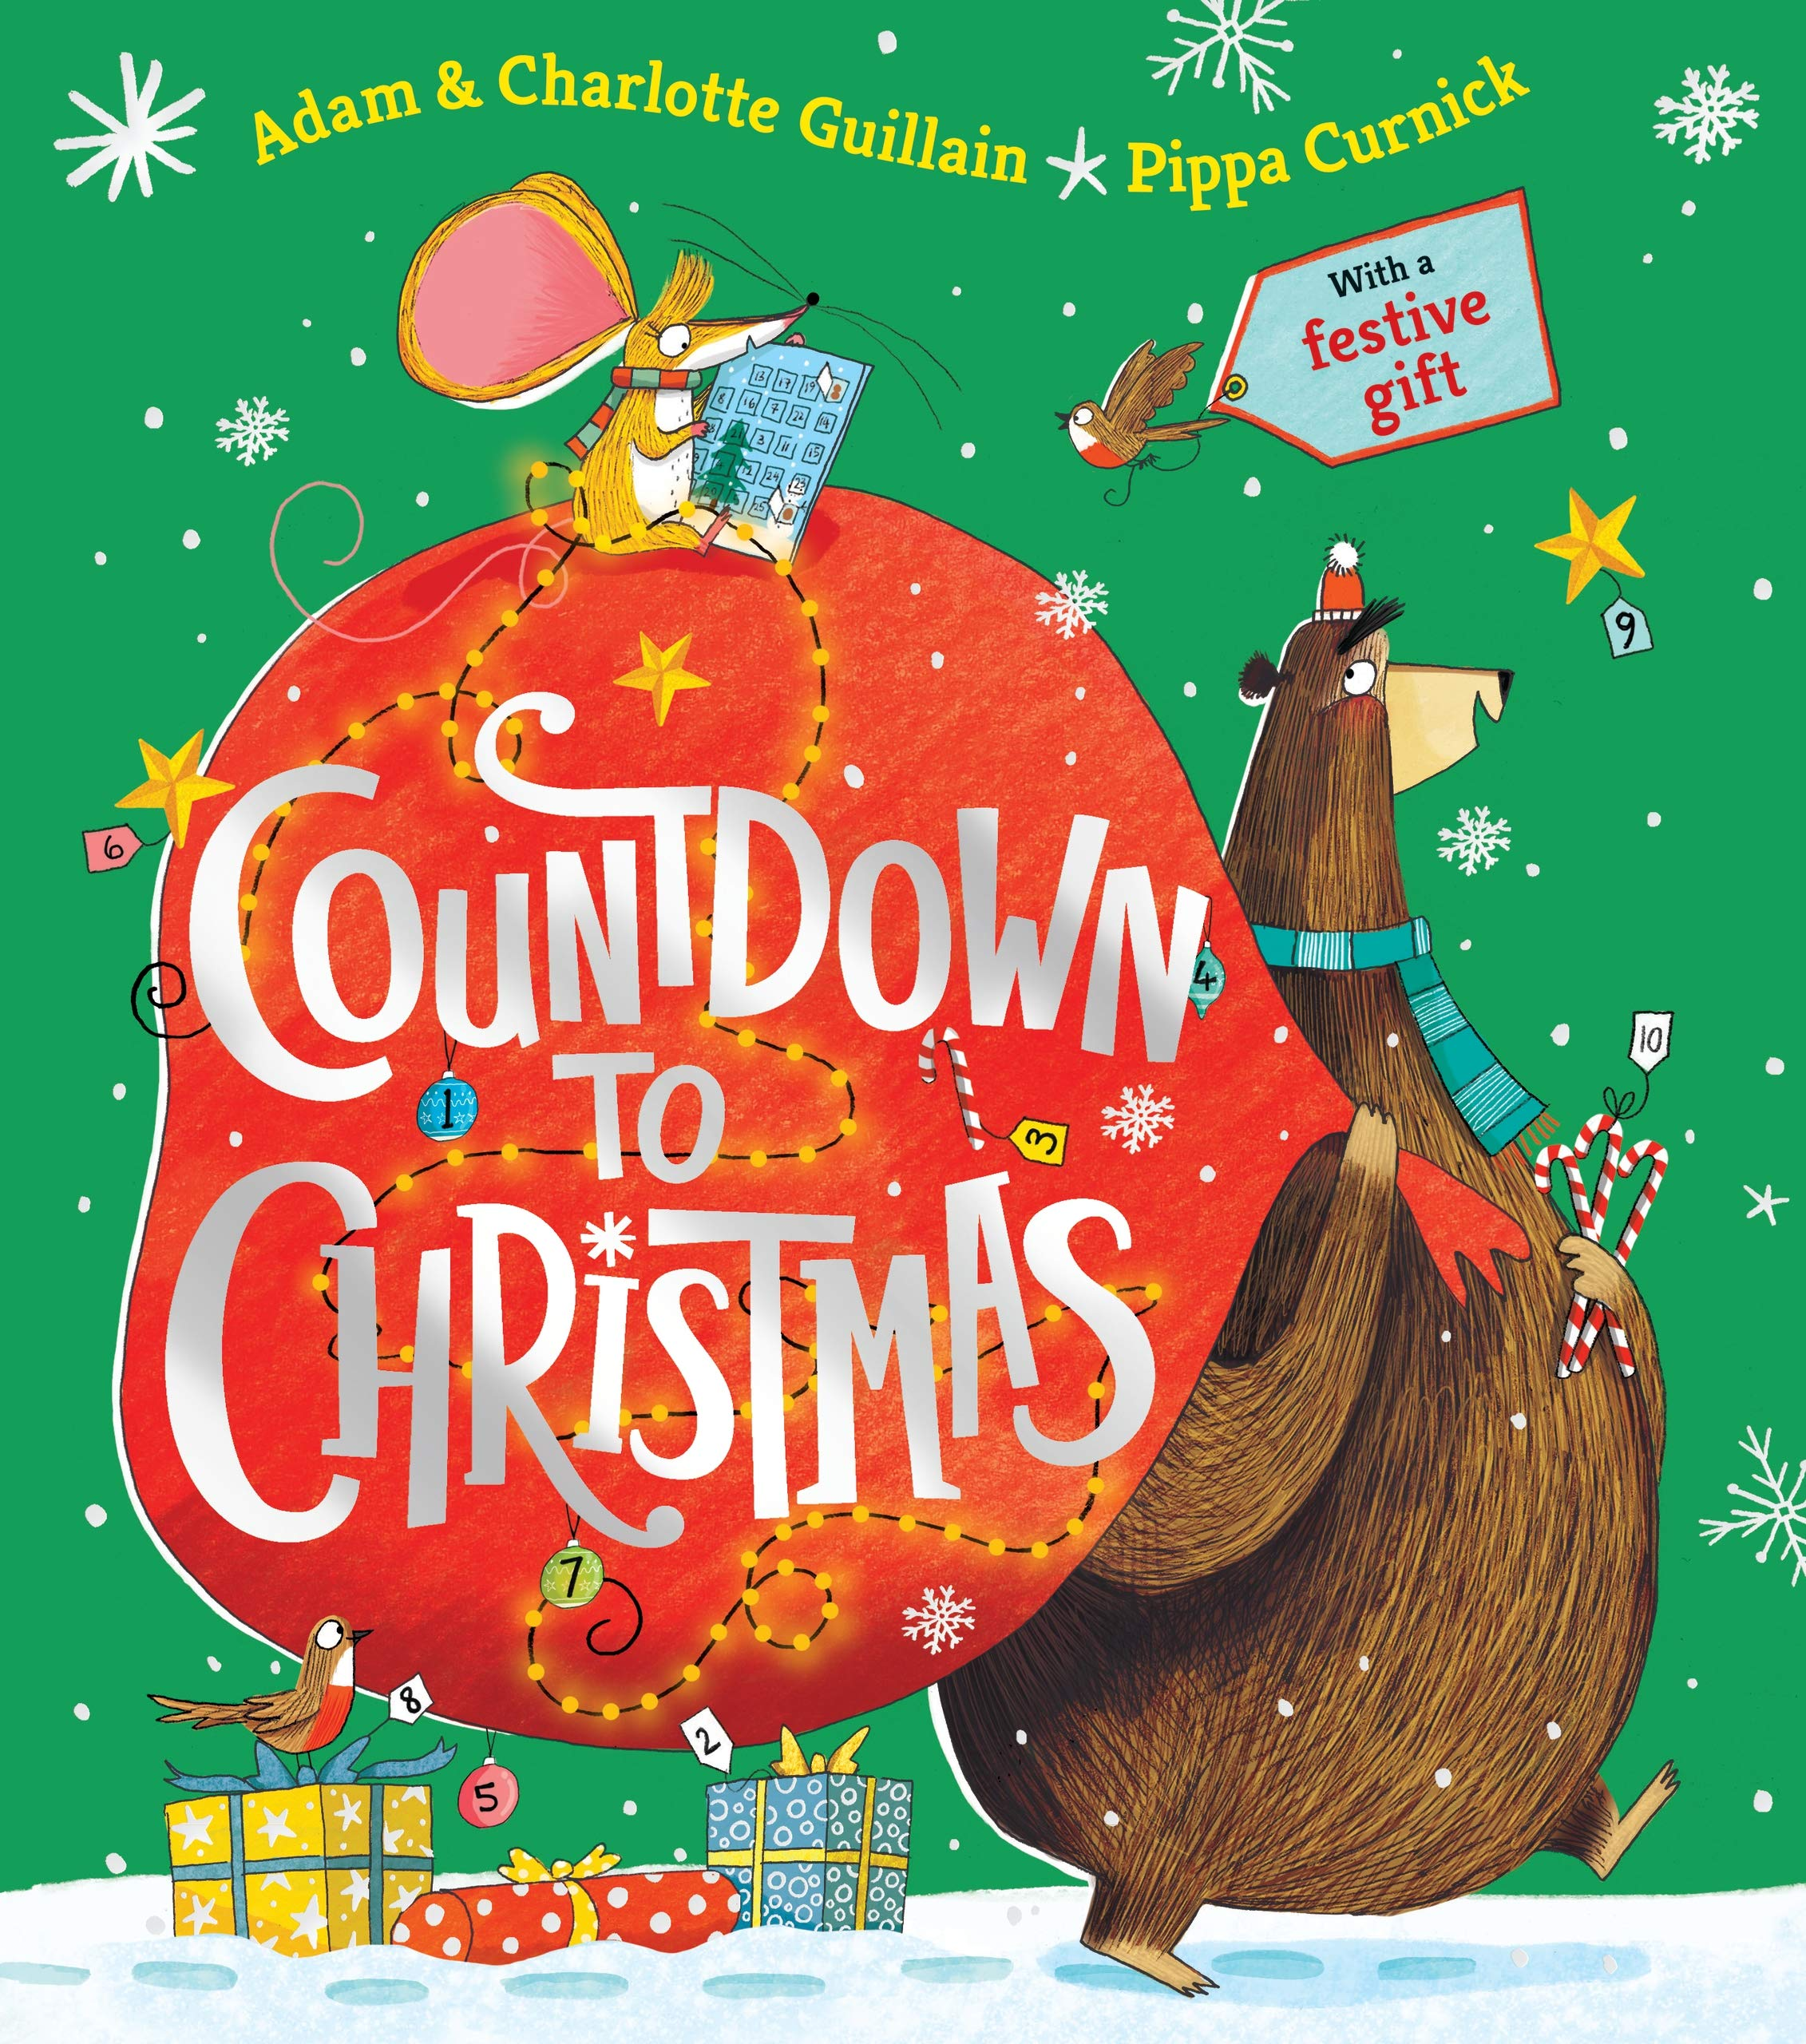 Countdown To Christmas.Countdown To Christmas Amazon Co Uk Adam And Charlotte